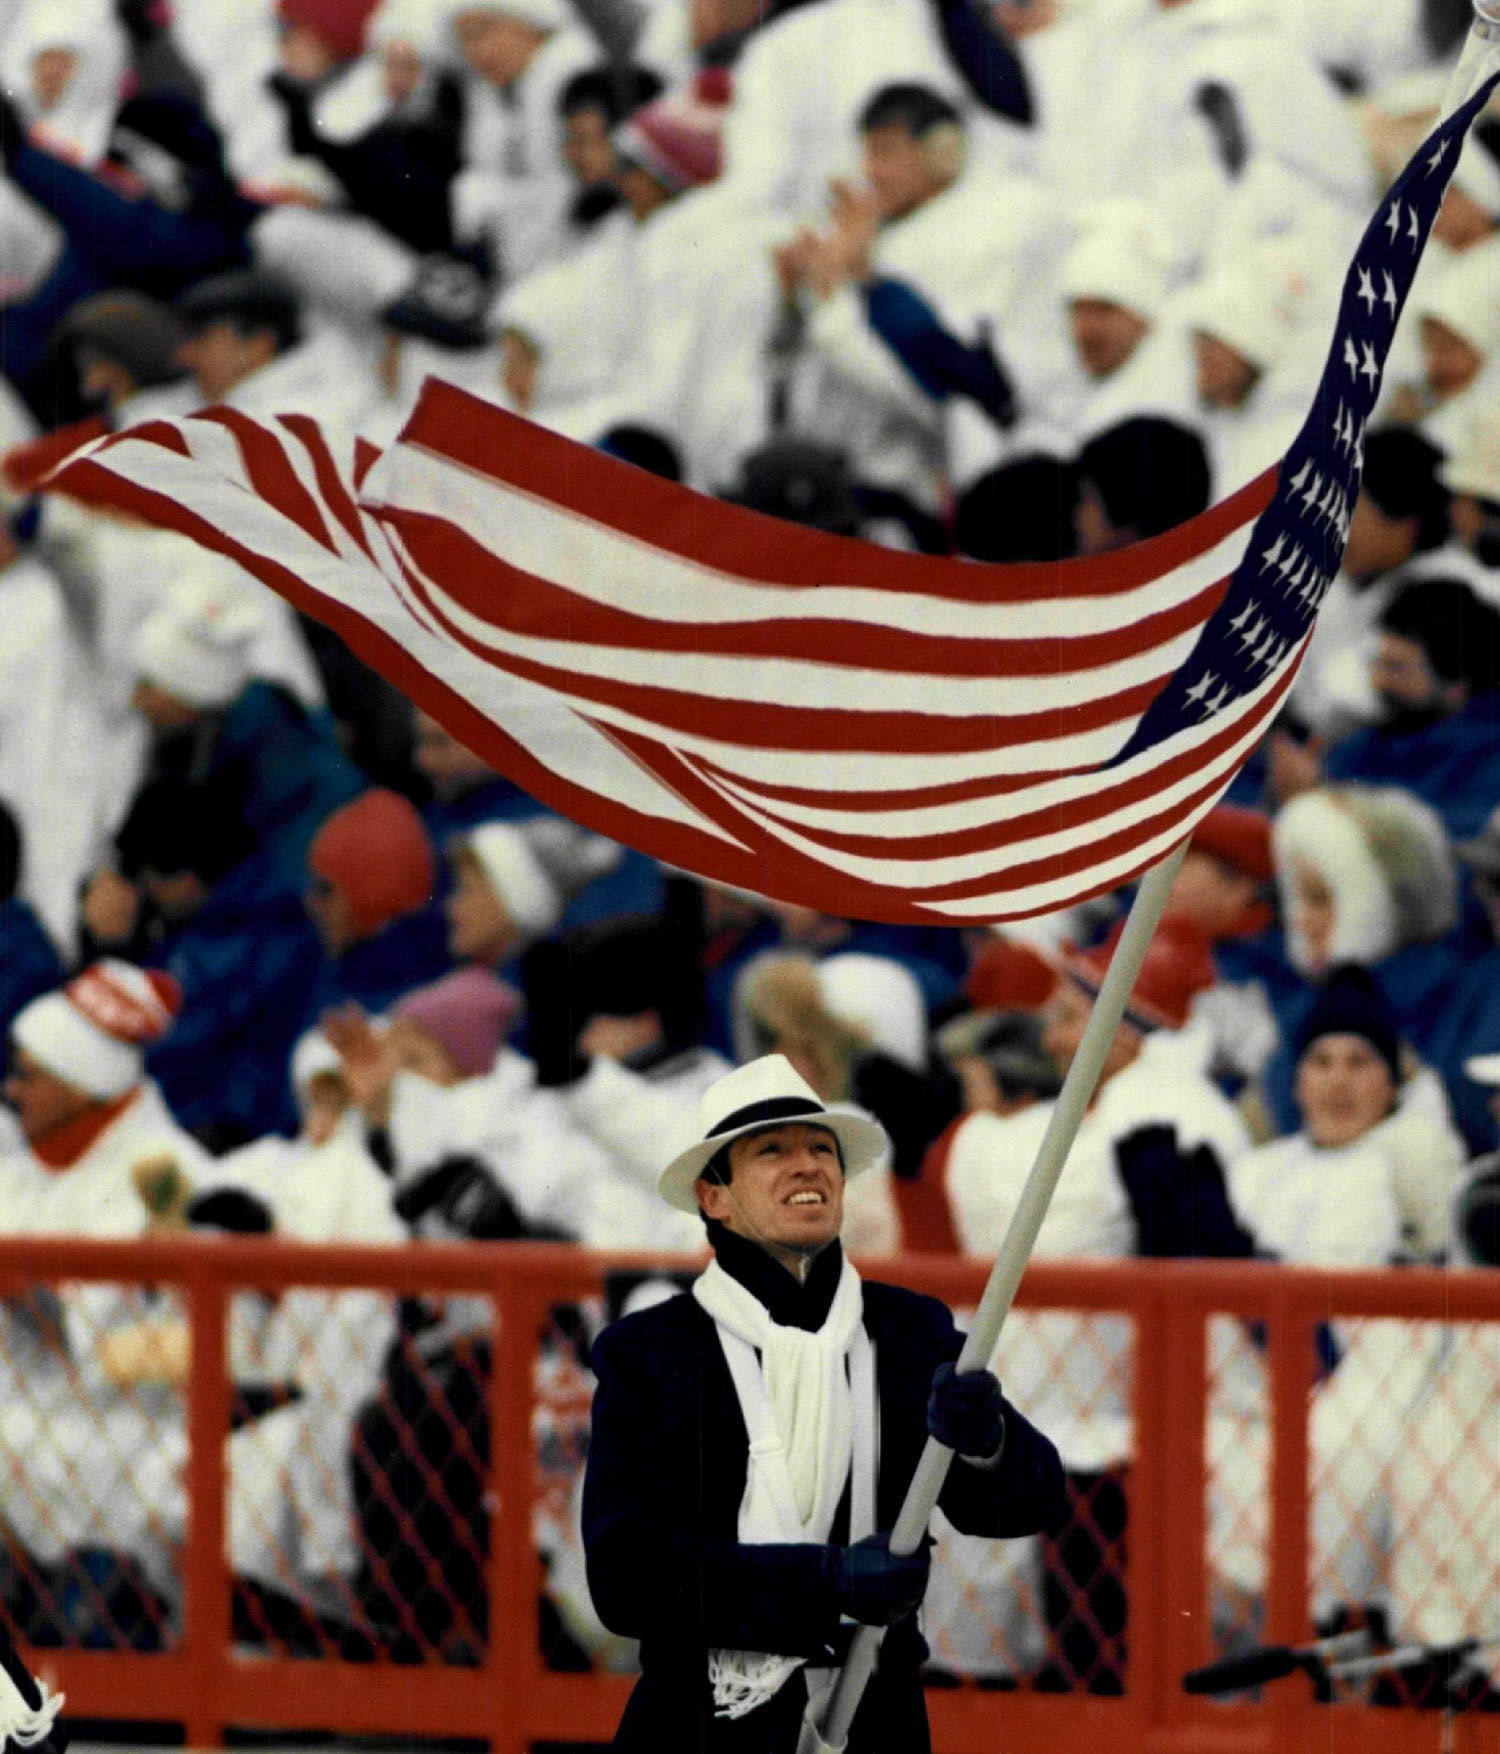 Biathlon athlete Lyle Nelson carries the flag during the opening of the 1988 Winter Olympics in Calgary, Aberta, Canada.